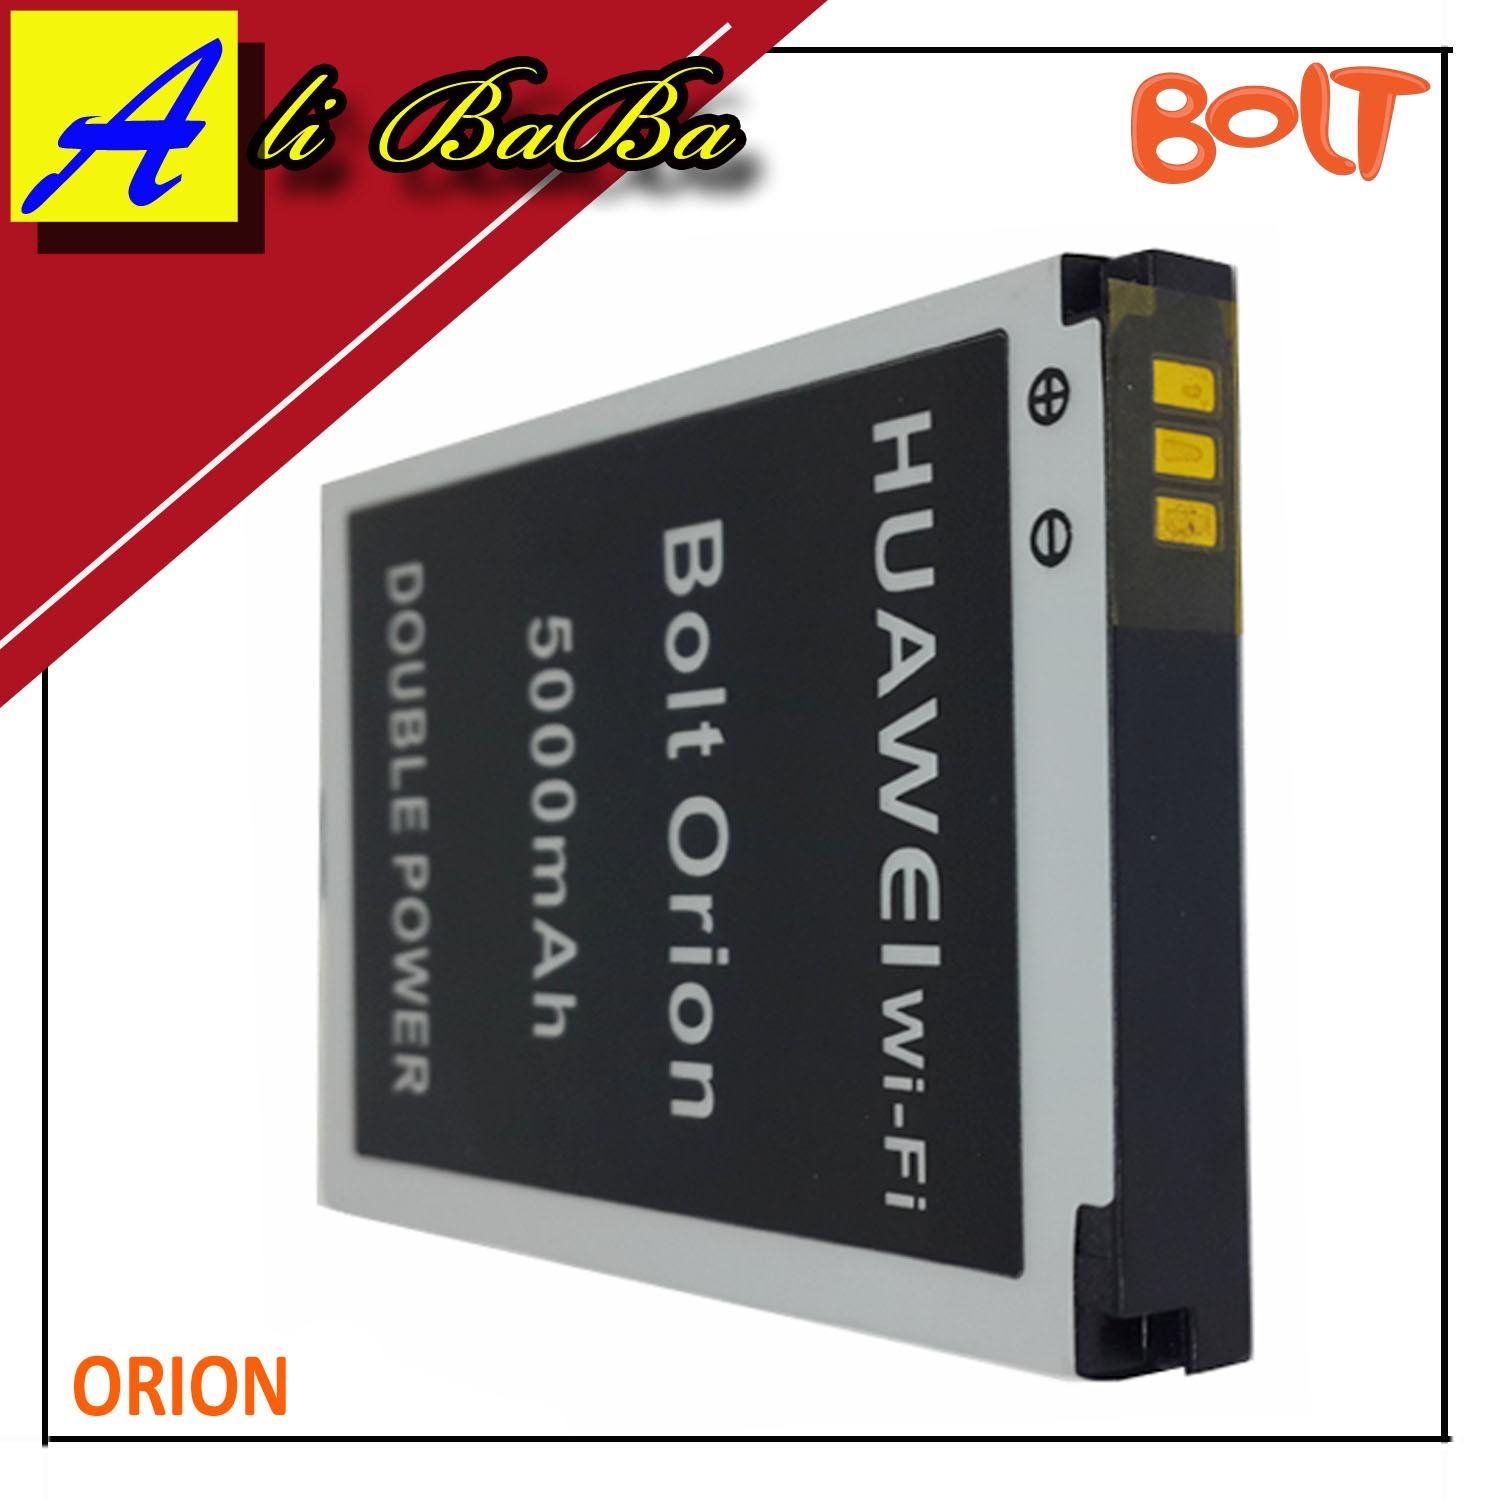 Baterai Modem Bolt Orion Movimax MV Li021 Double Power Bolt Huawei Original Batre OEM Modem Battery ...